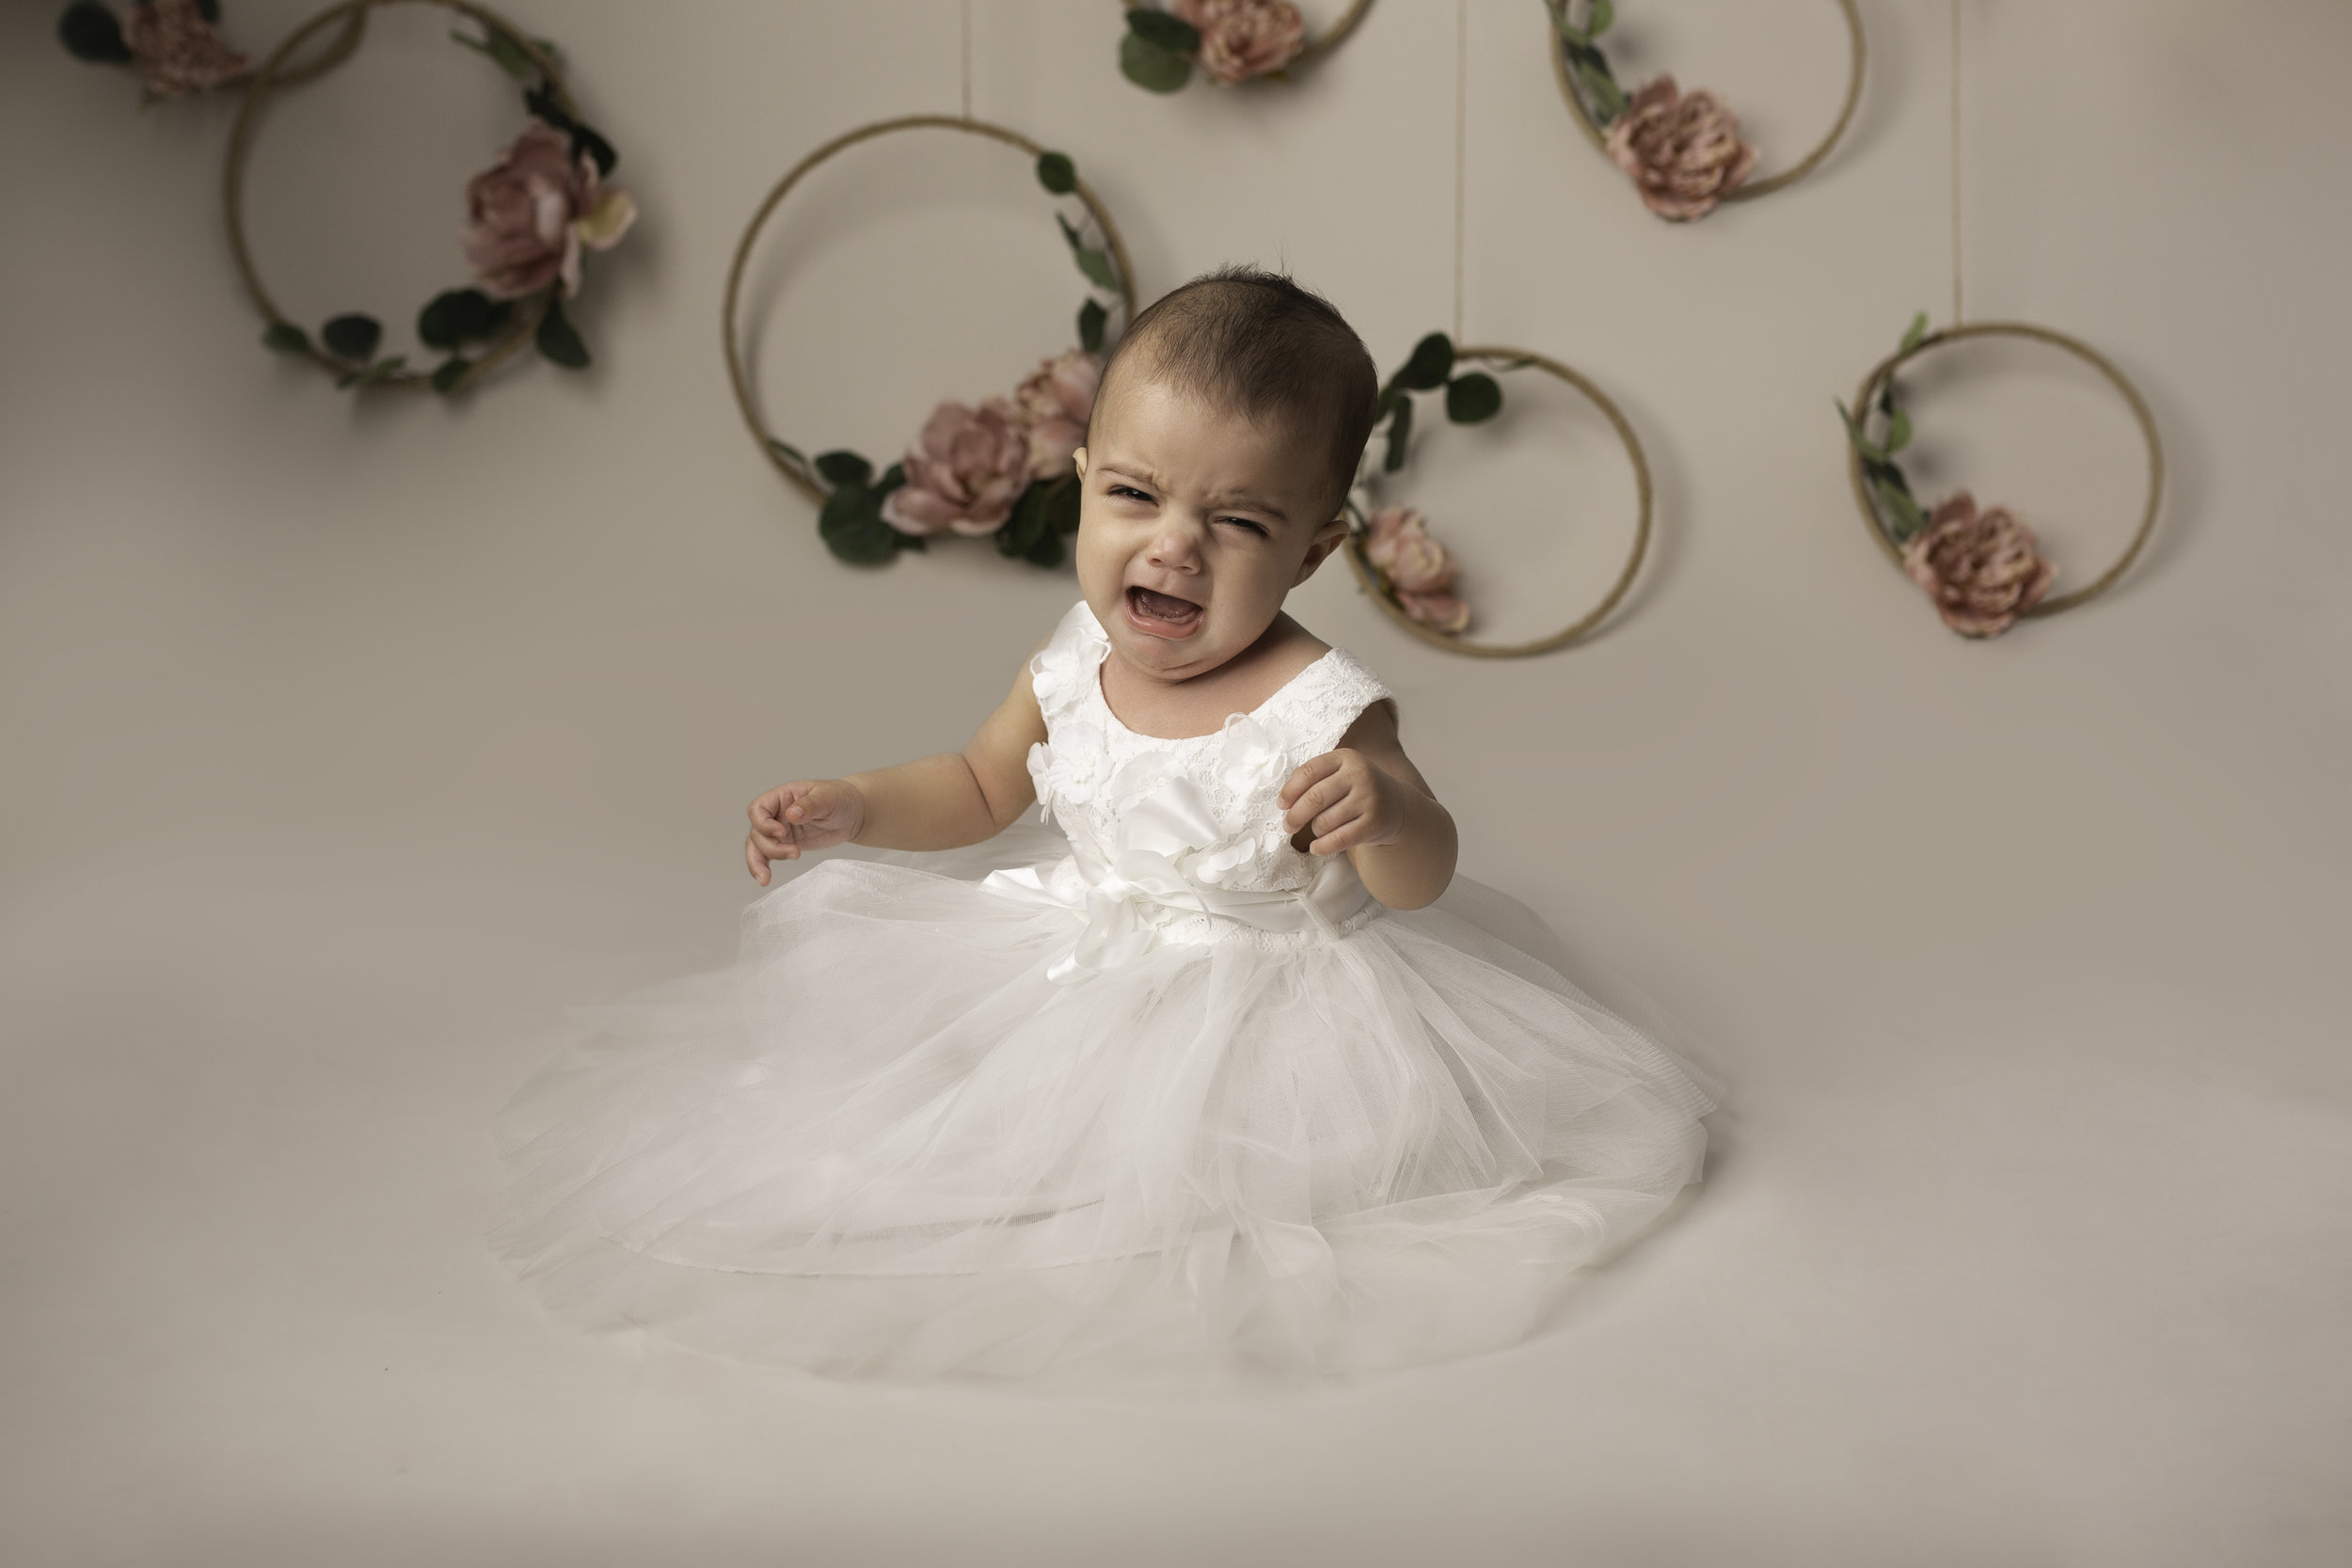 Lea-cooper-photography-childrens-photographer-portrait-session-sitter-session-6-months-old-photos-willenhall-wolverahmpton-birmingham-west-midlands-uk-11.jpg